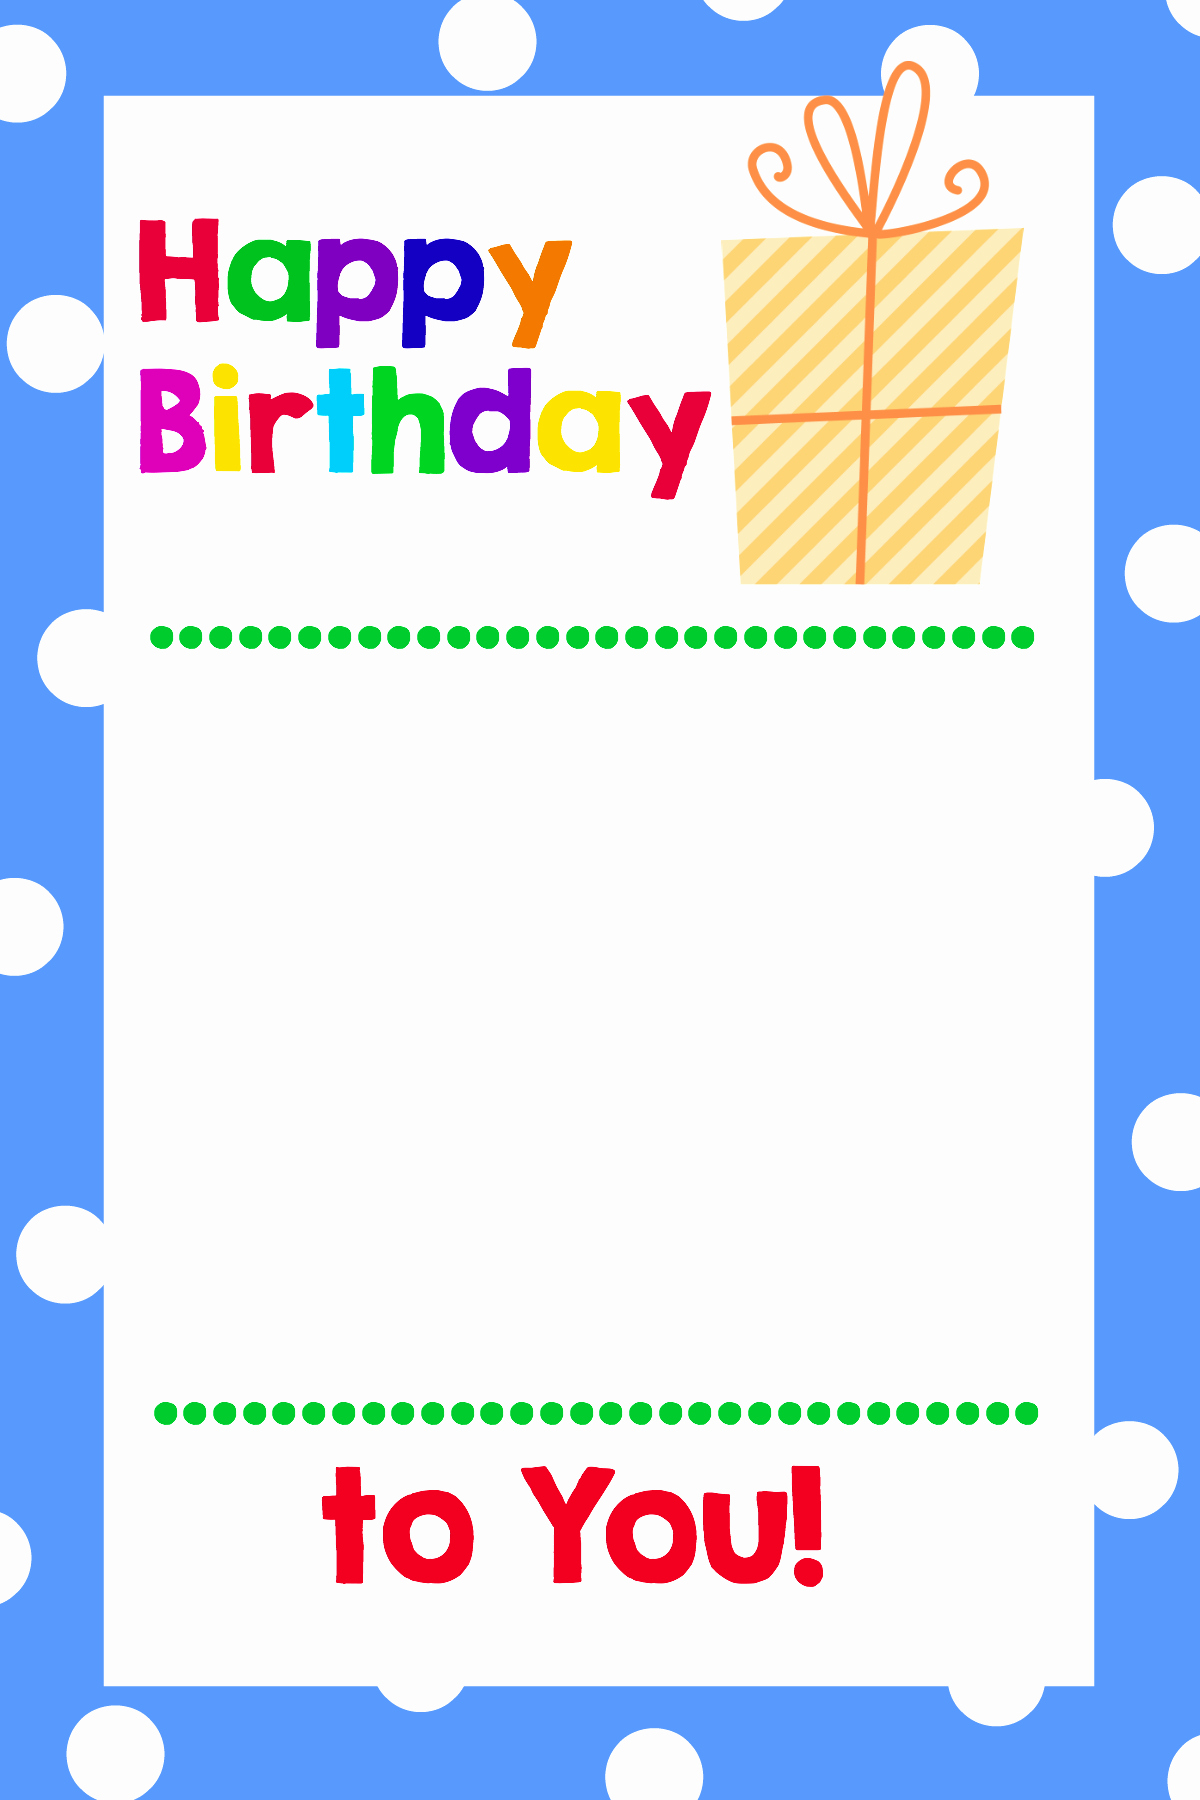 Free Birthday Card Templates Awesome Free Printable Birthday Cards that Hold Gift Cards